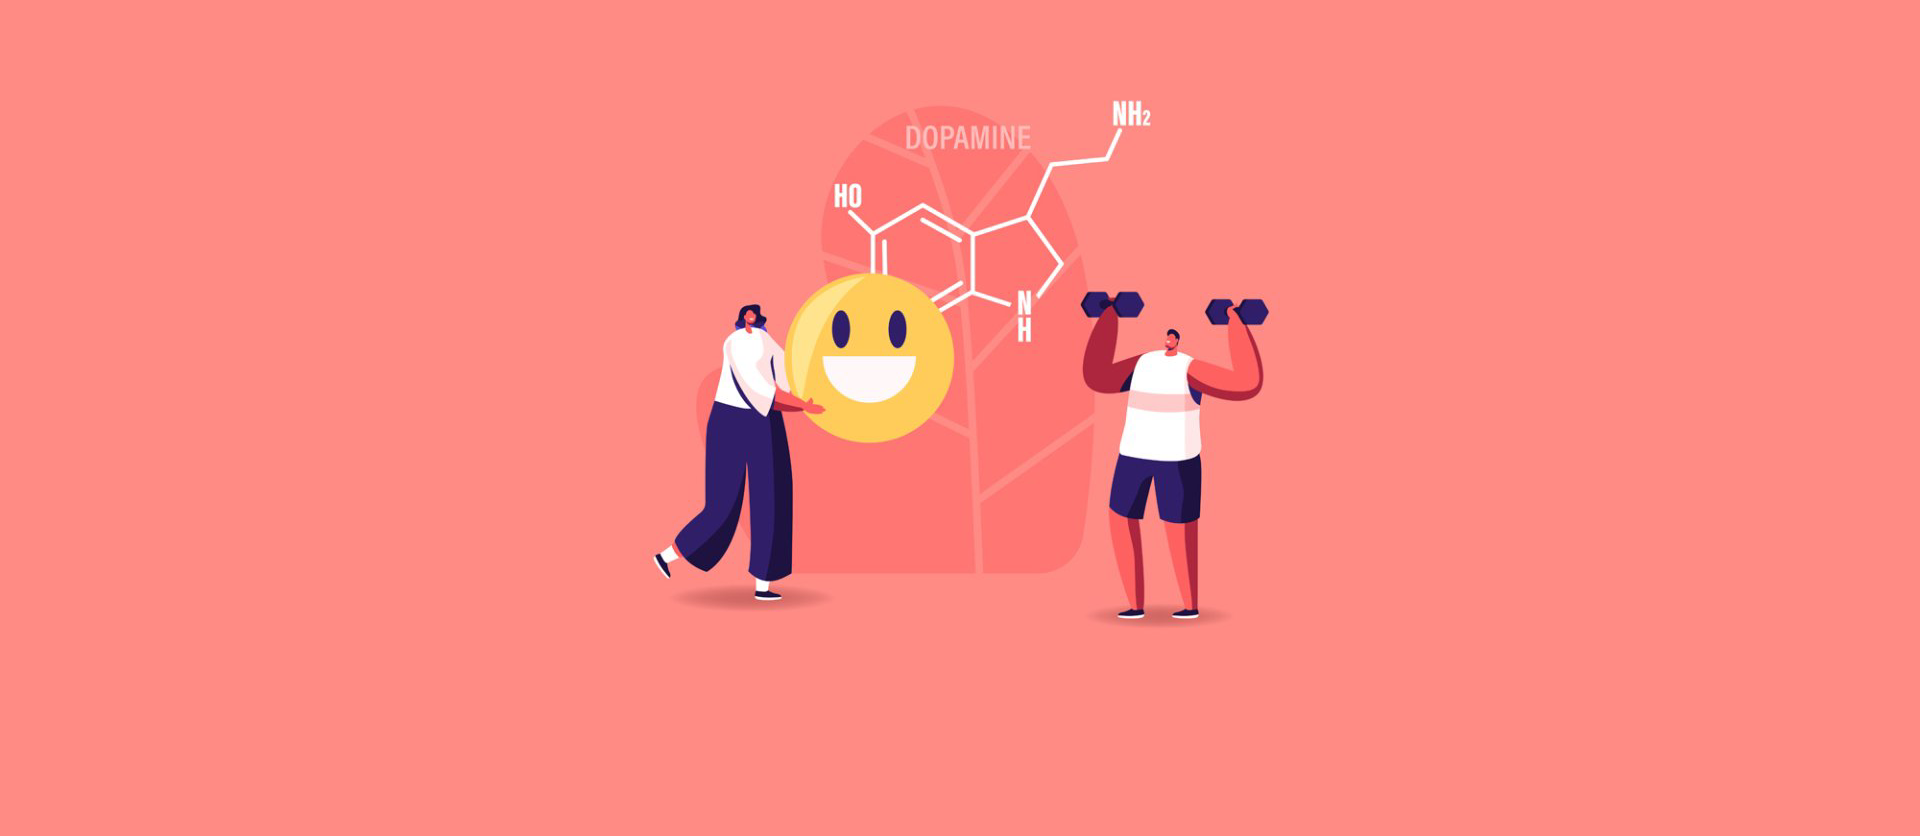 Boost your work wellbeing - Dopamine